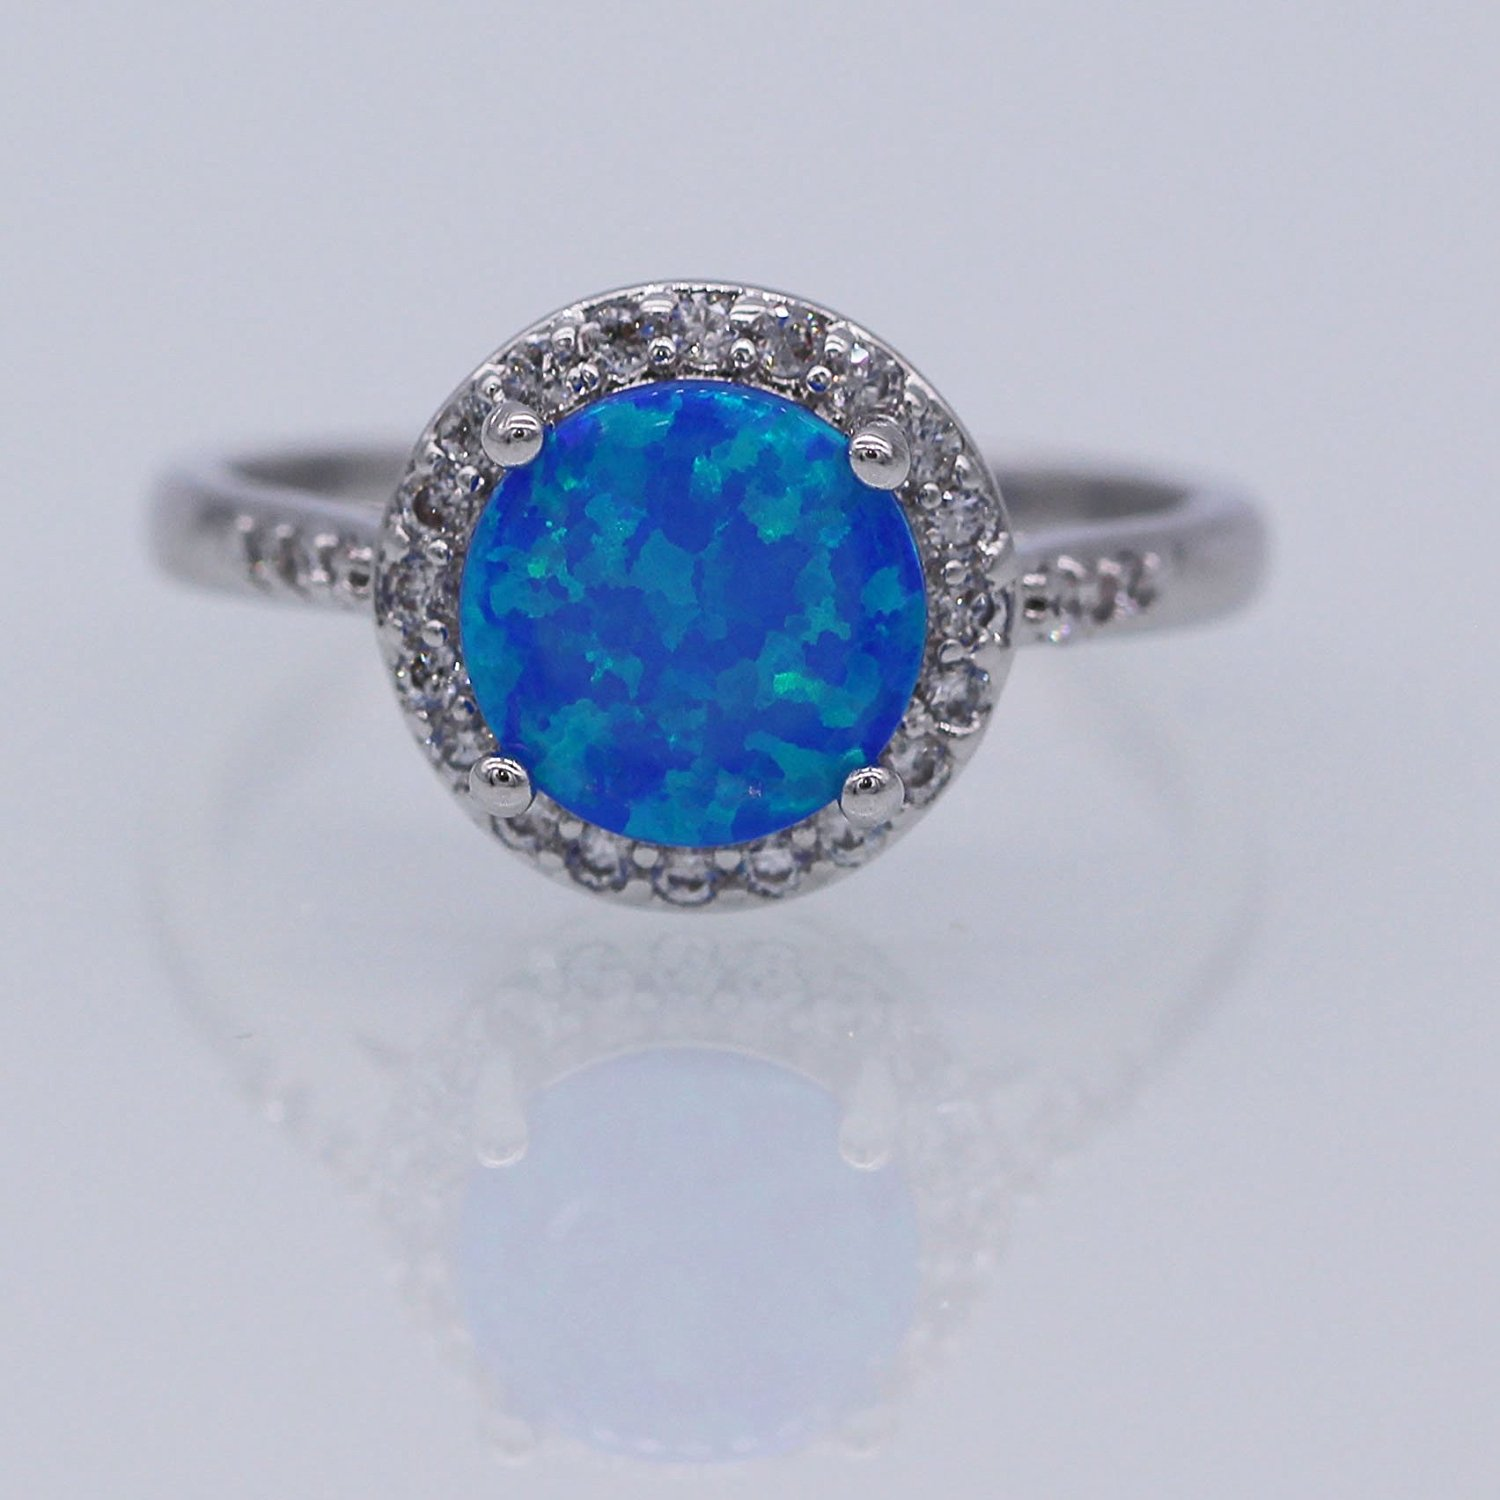 dark diamond engagement and this instead gold platinum sapphire art antique pin with deco ring cornflower but a rings blue